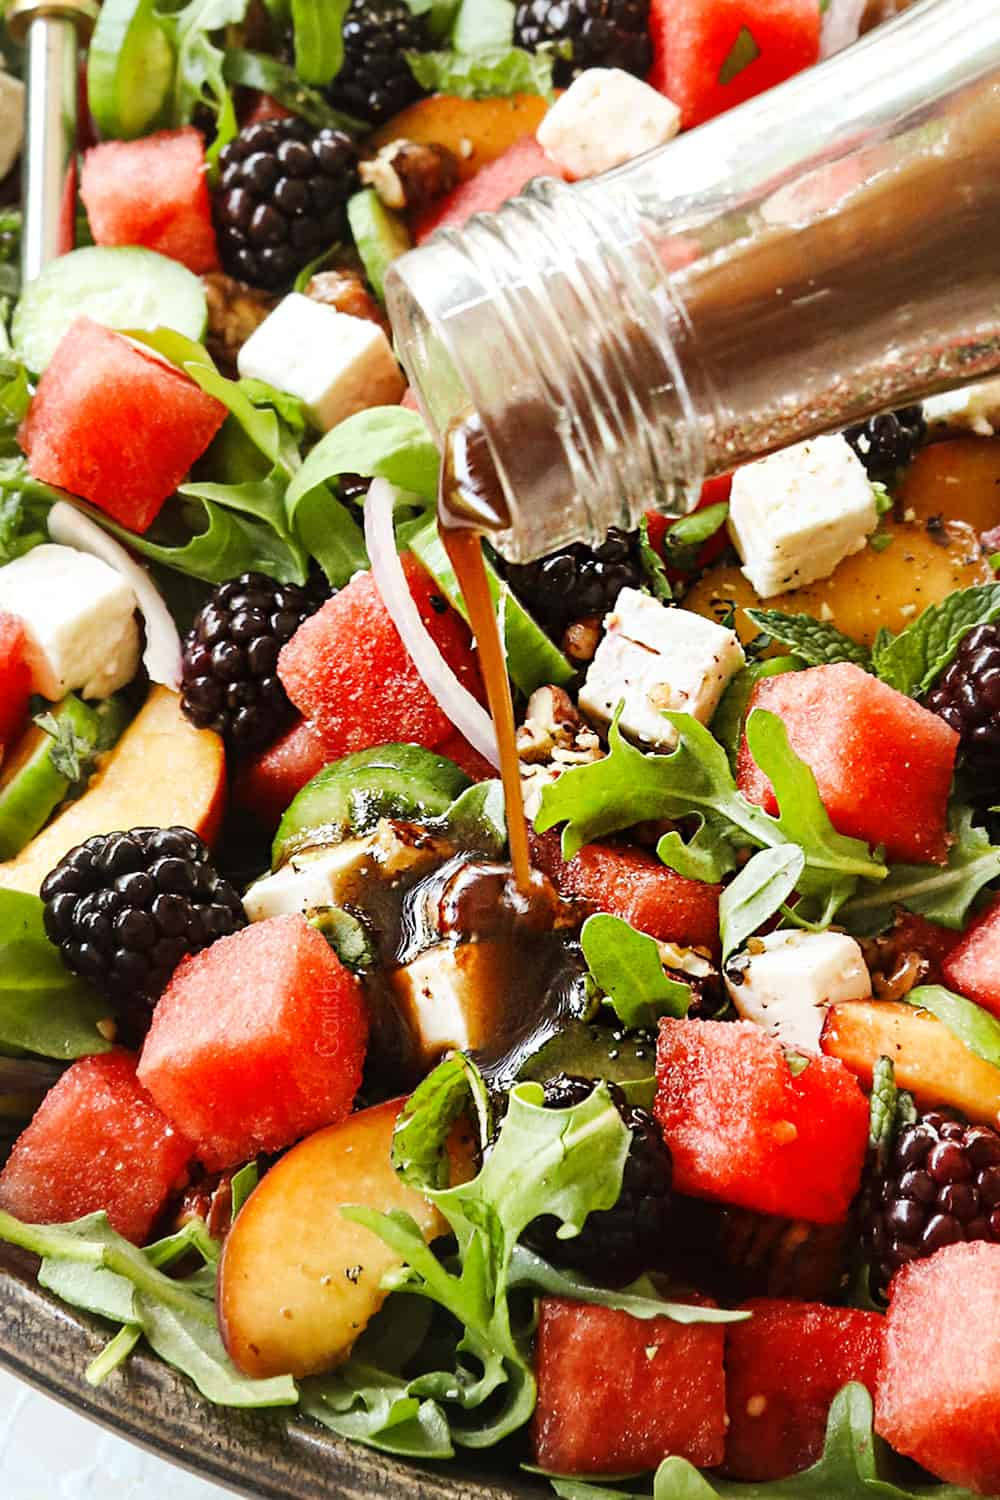 showing how to make watermelon salad recipe by drizzling with balsamic dressing